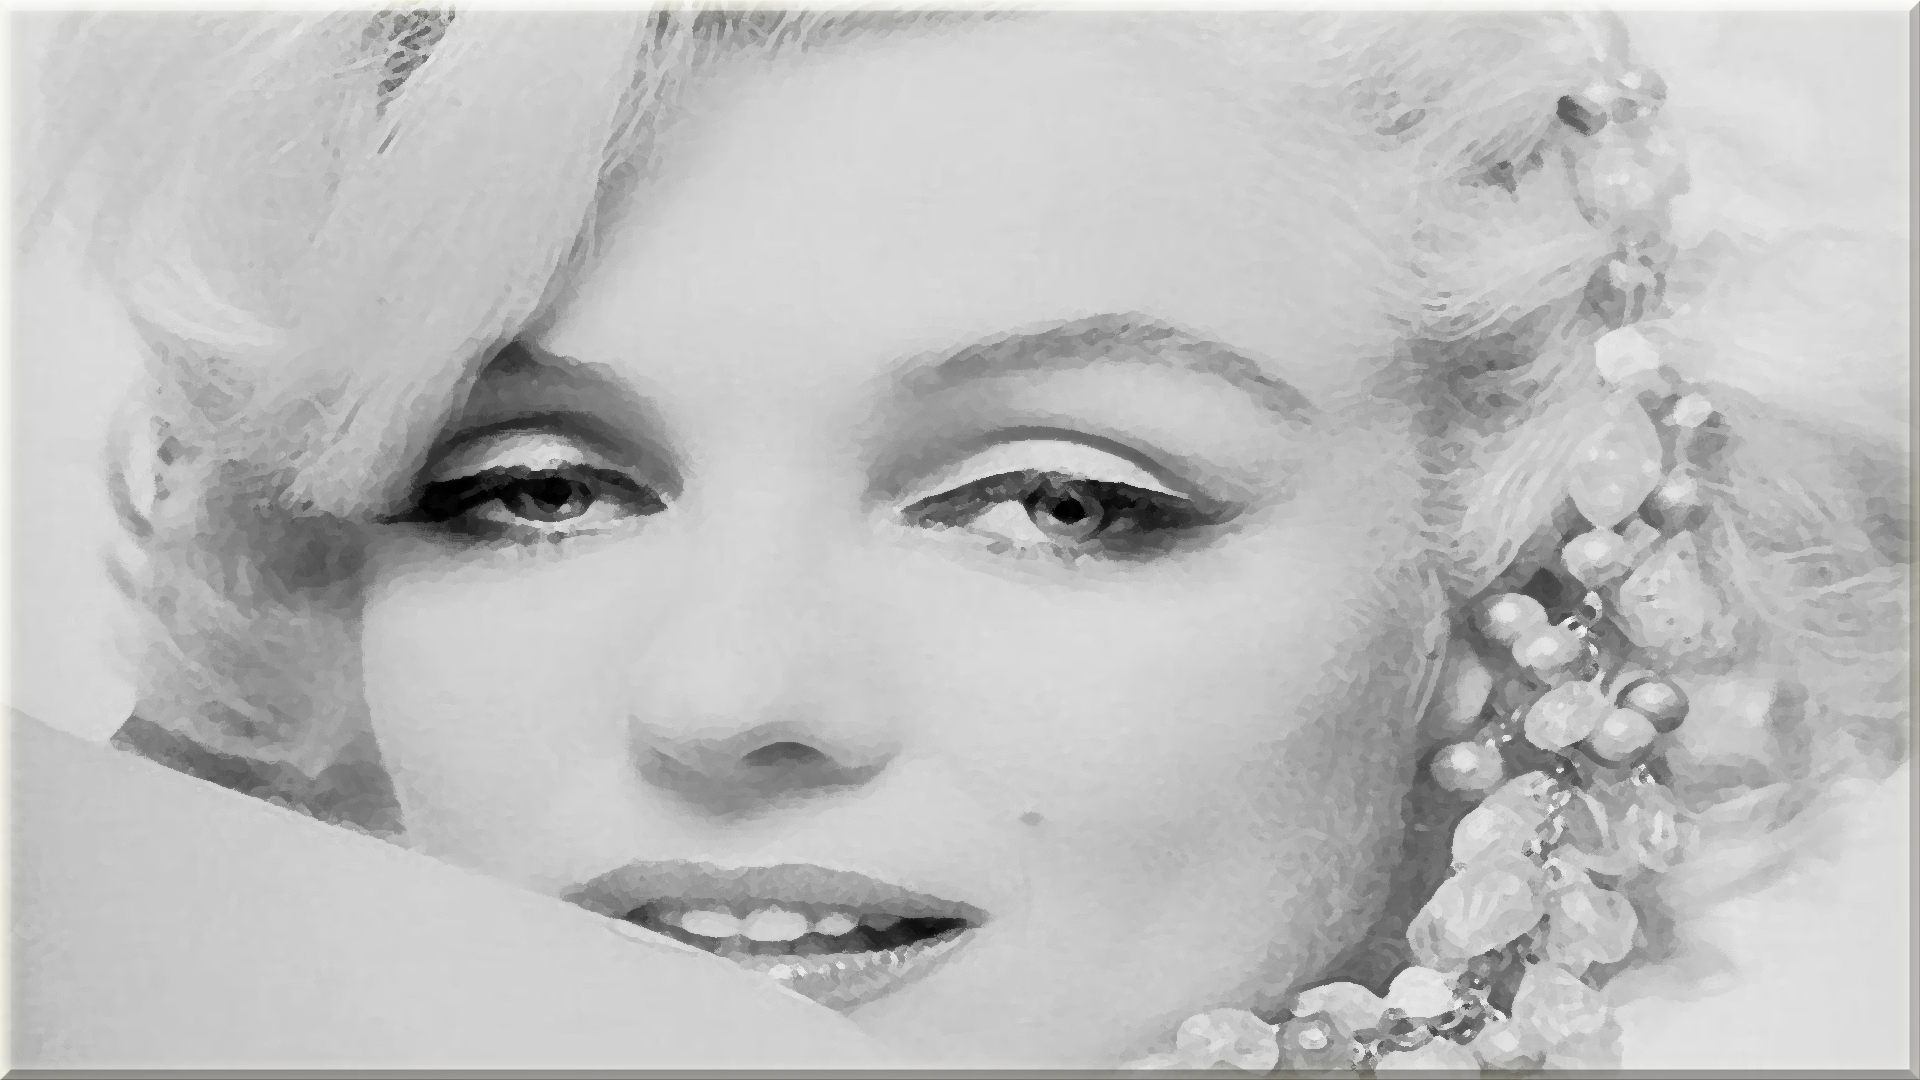 Citaten Marilyn Monroe Hd : Marilyn monroe hd wallpapers pictures images